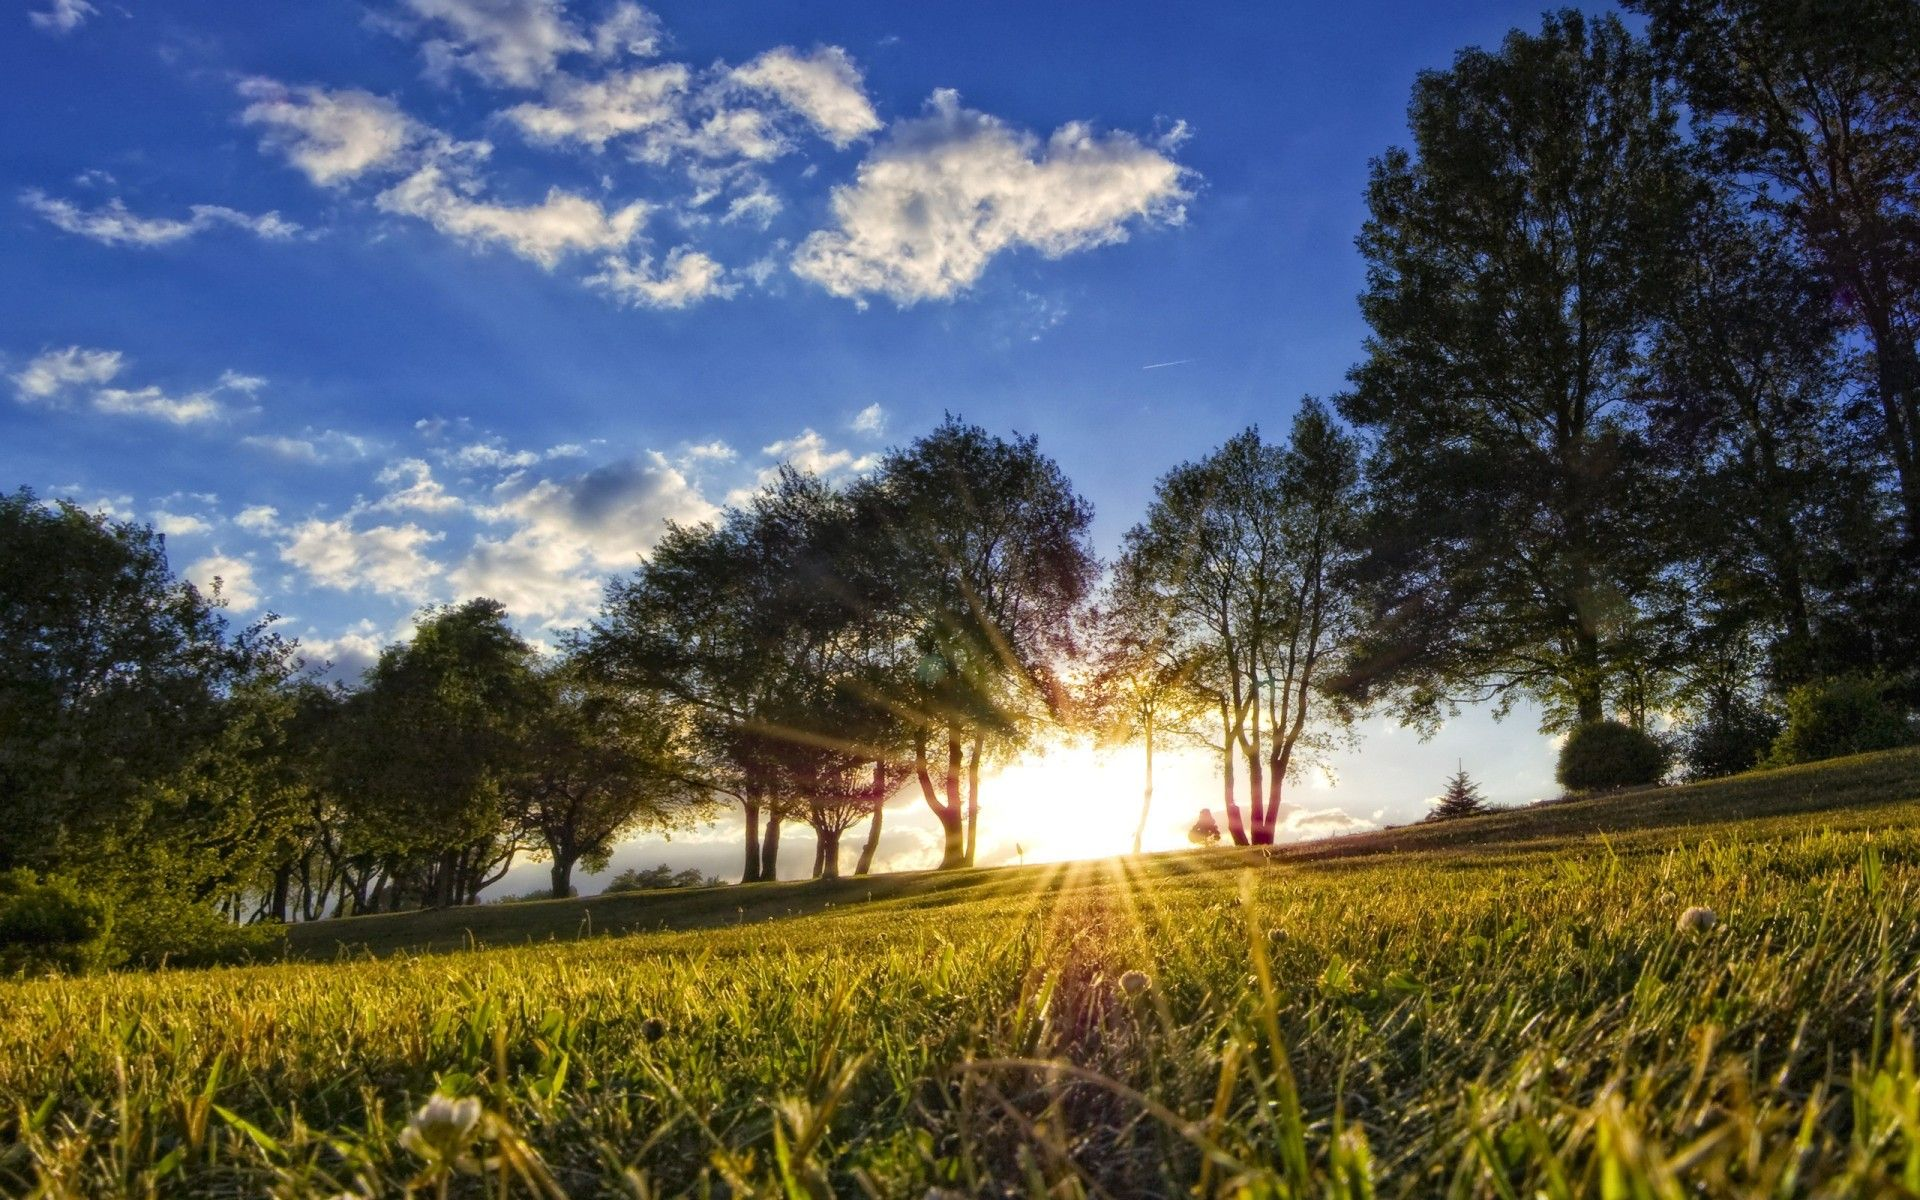 Summer Nature Pictures Widescreen 2 Hd Wallpapers Nature